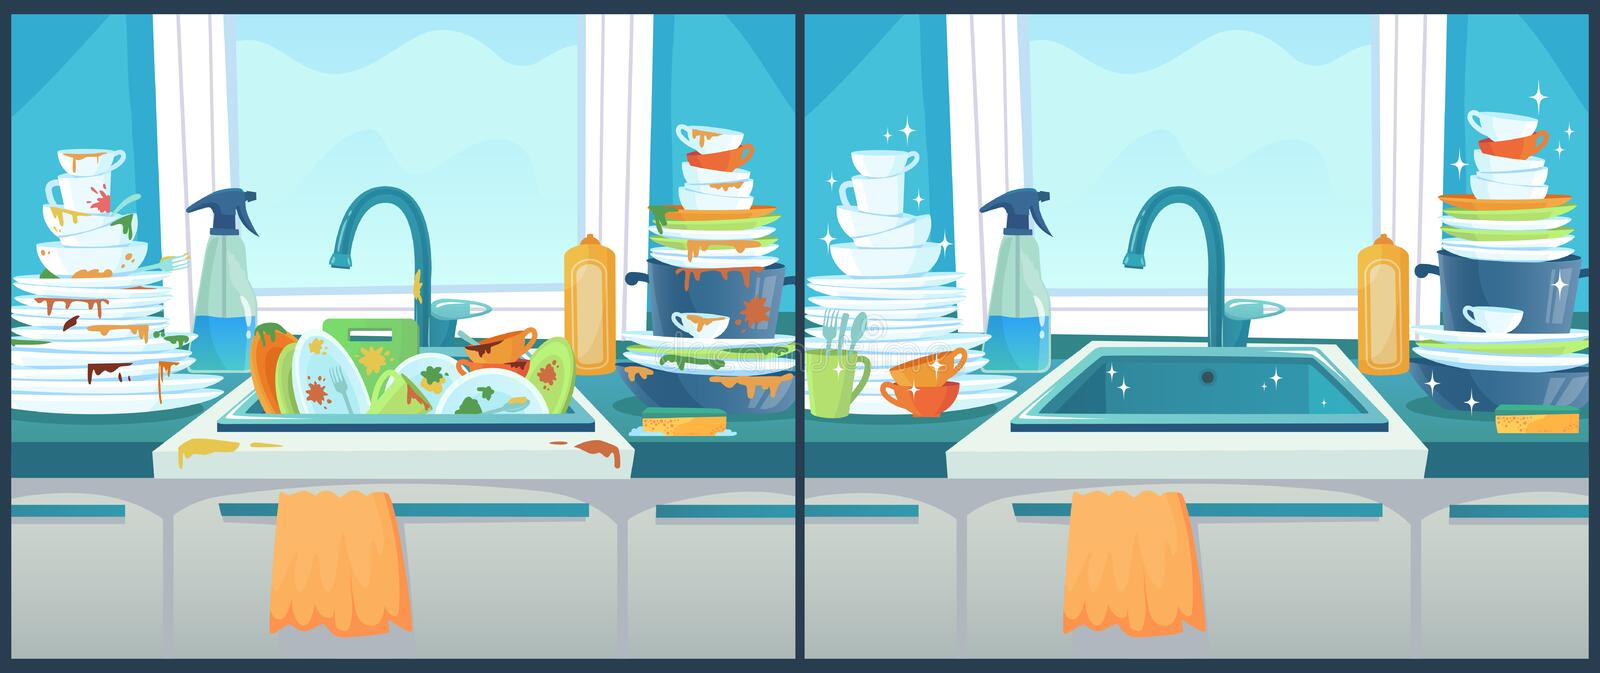 Washing dishes in sink. Dirty dish in kitchen, clean plates and messy dinnerware cartoon vector illustration royalty free illustration